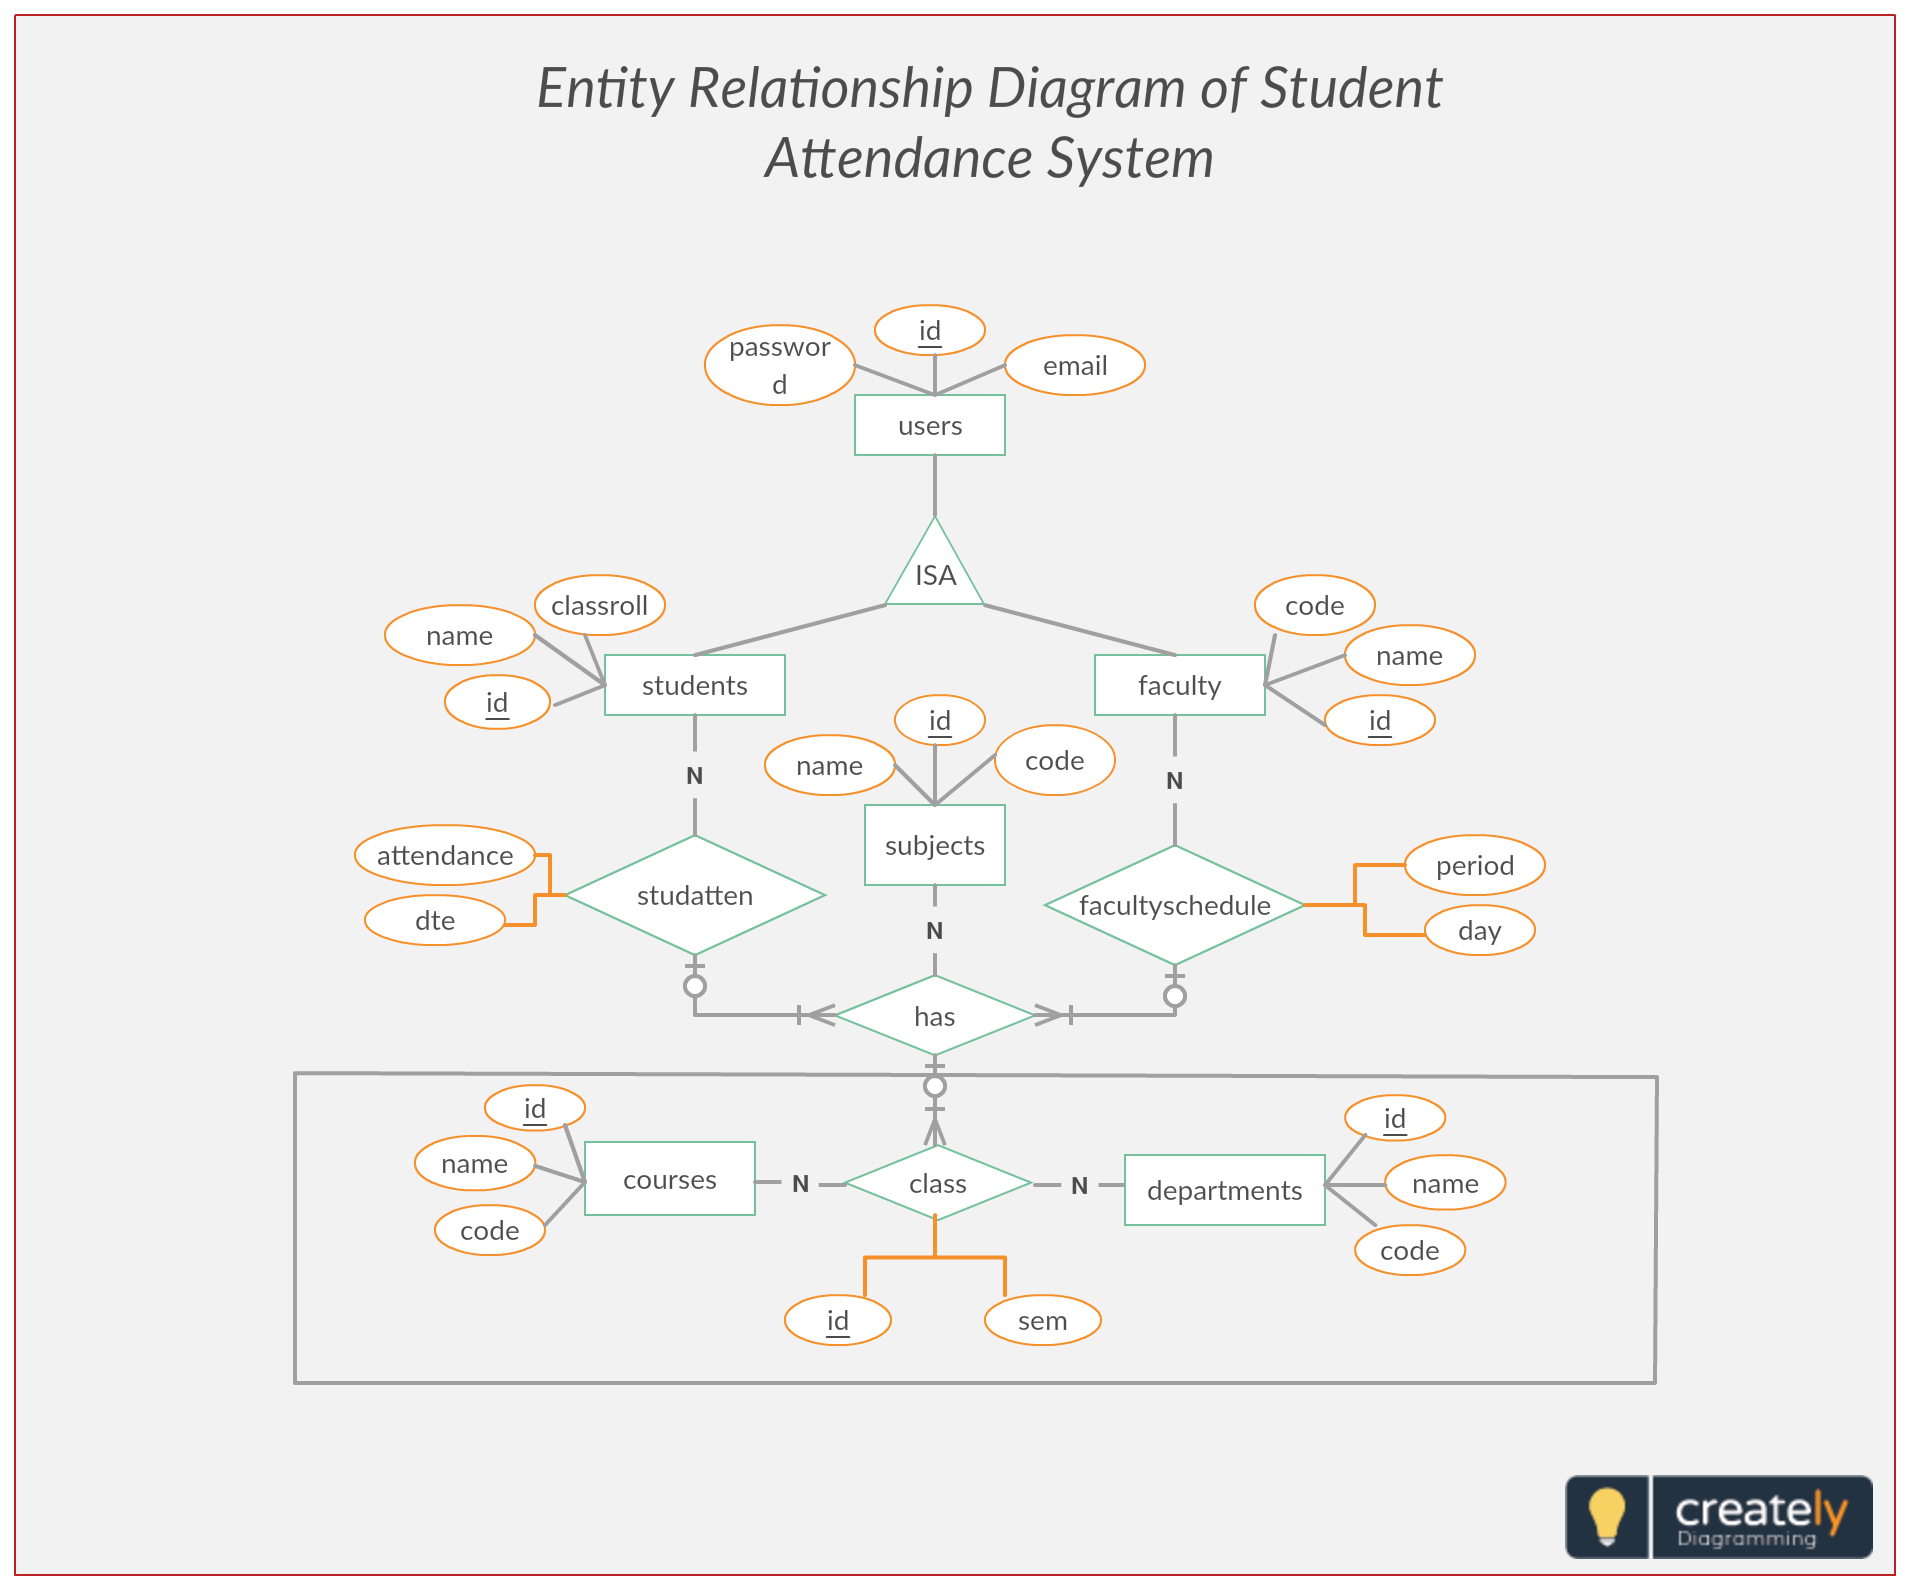 small resolution of er diagram student attendance management system entity relationship diagram represents the relationship between entities in a table